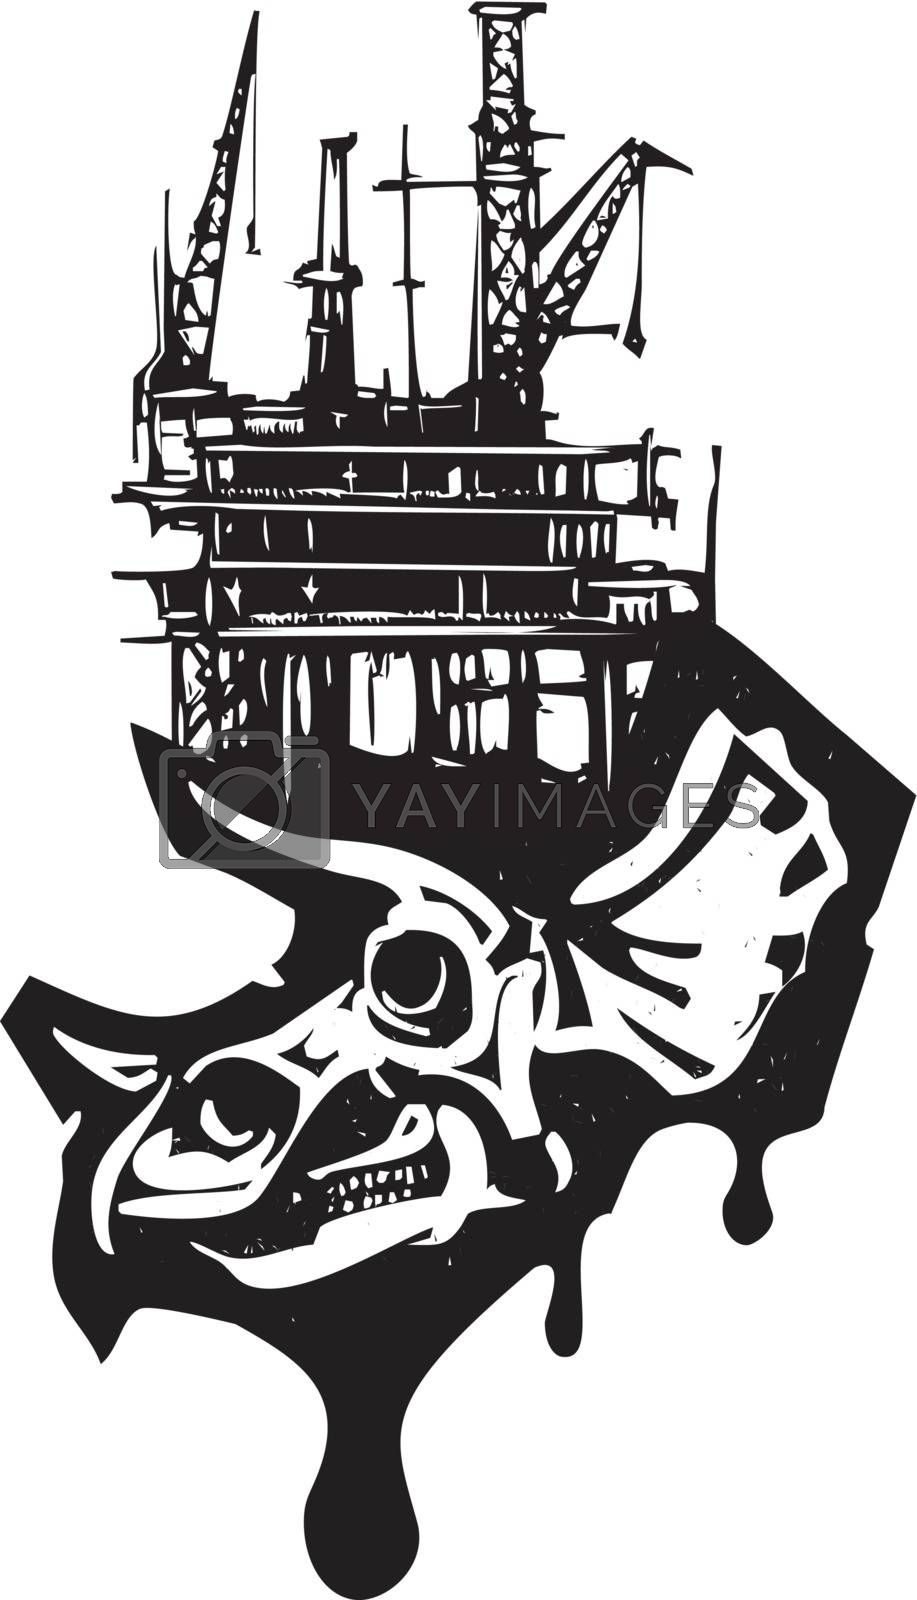 Woodcut style image of a fossil of a Triceratops dinosaur skull with an oil rig.